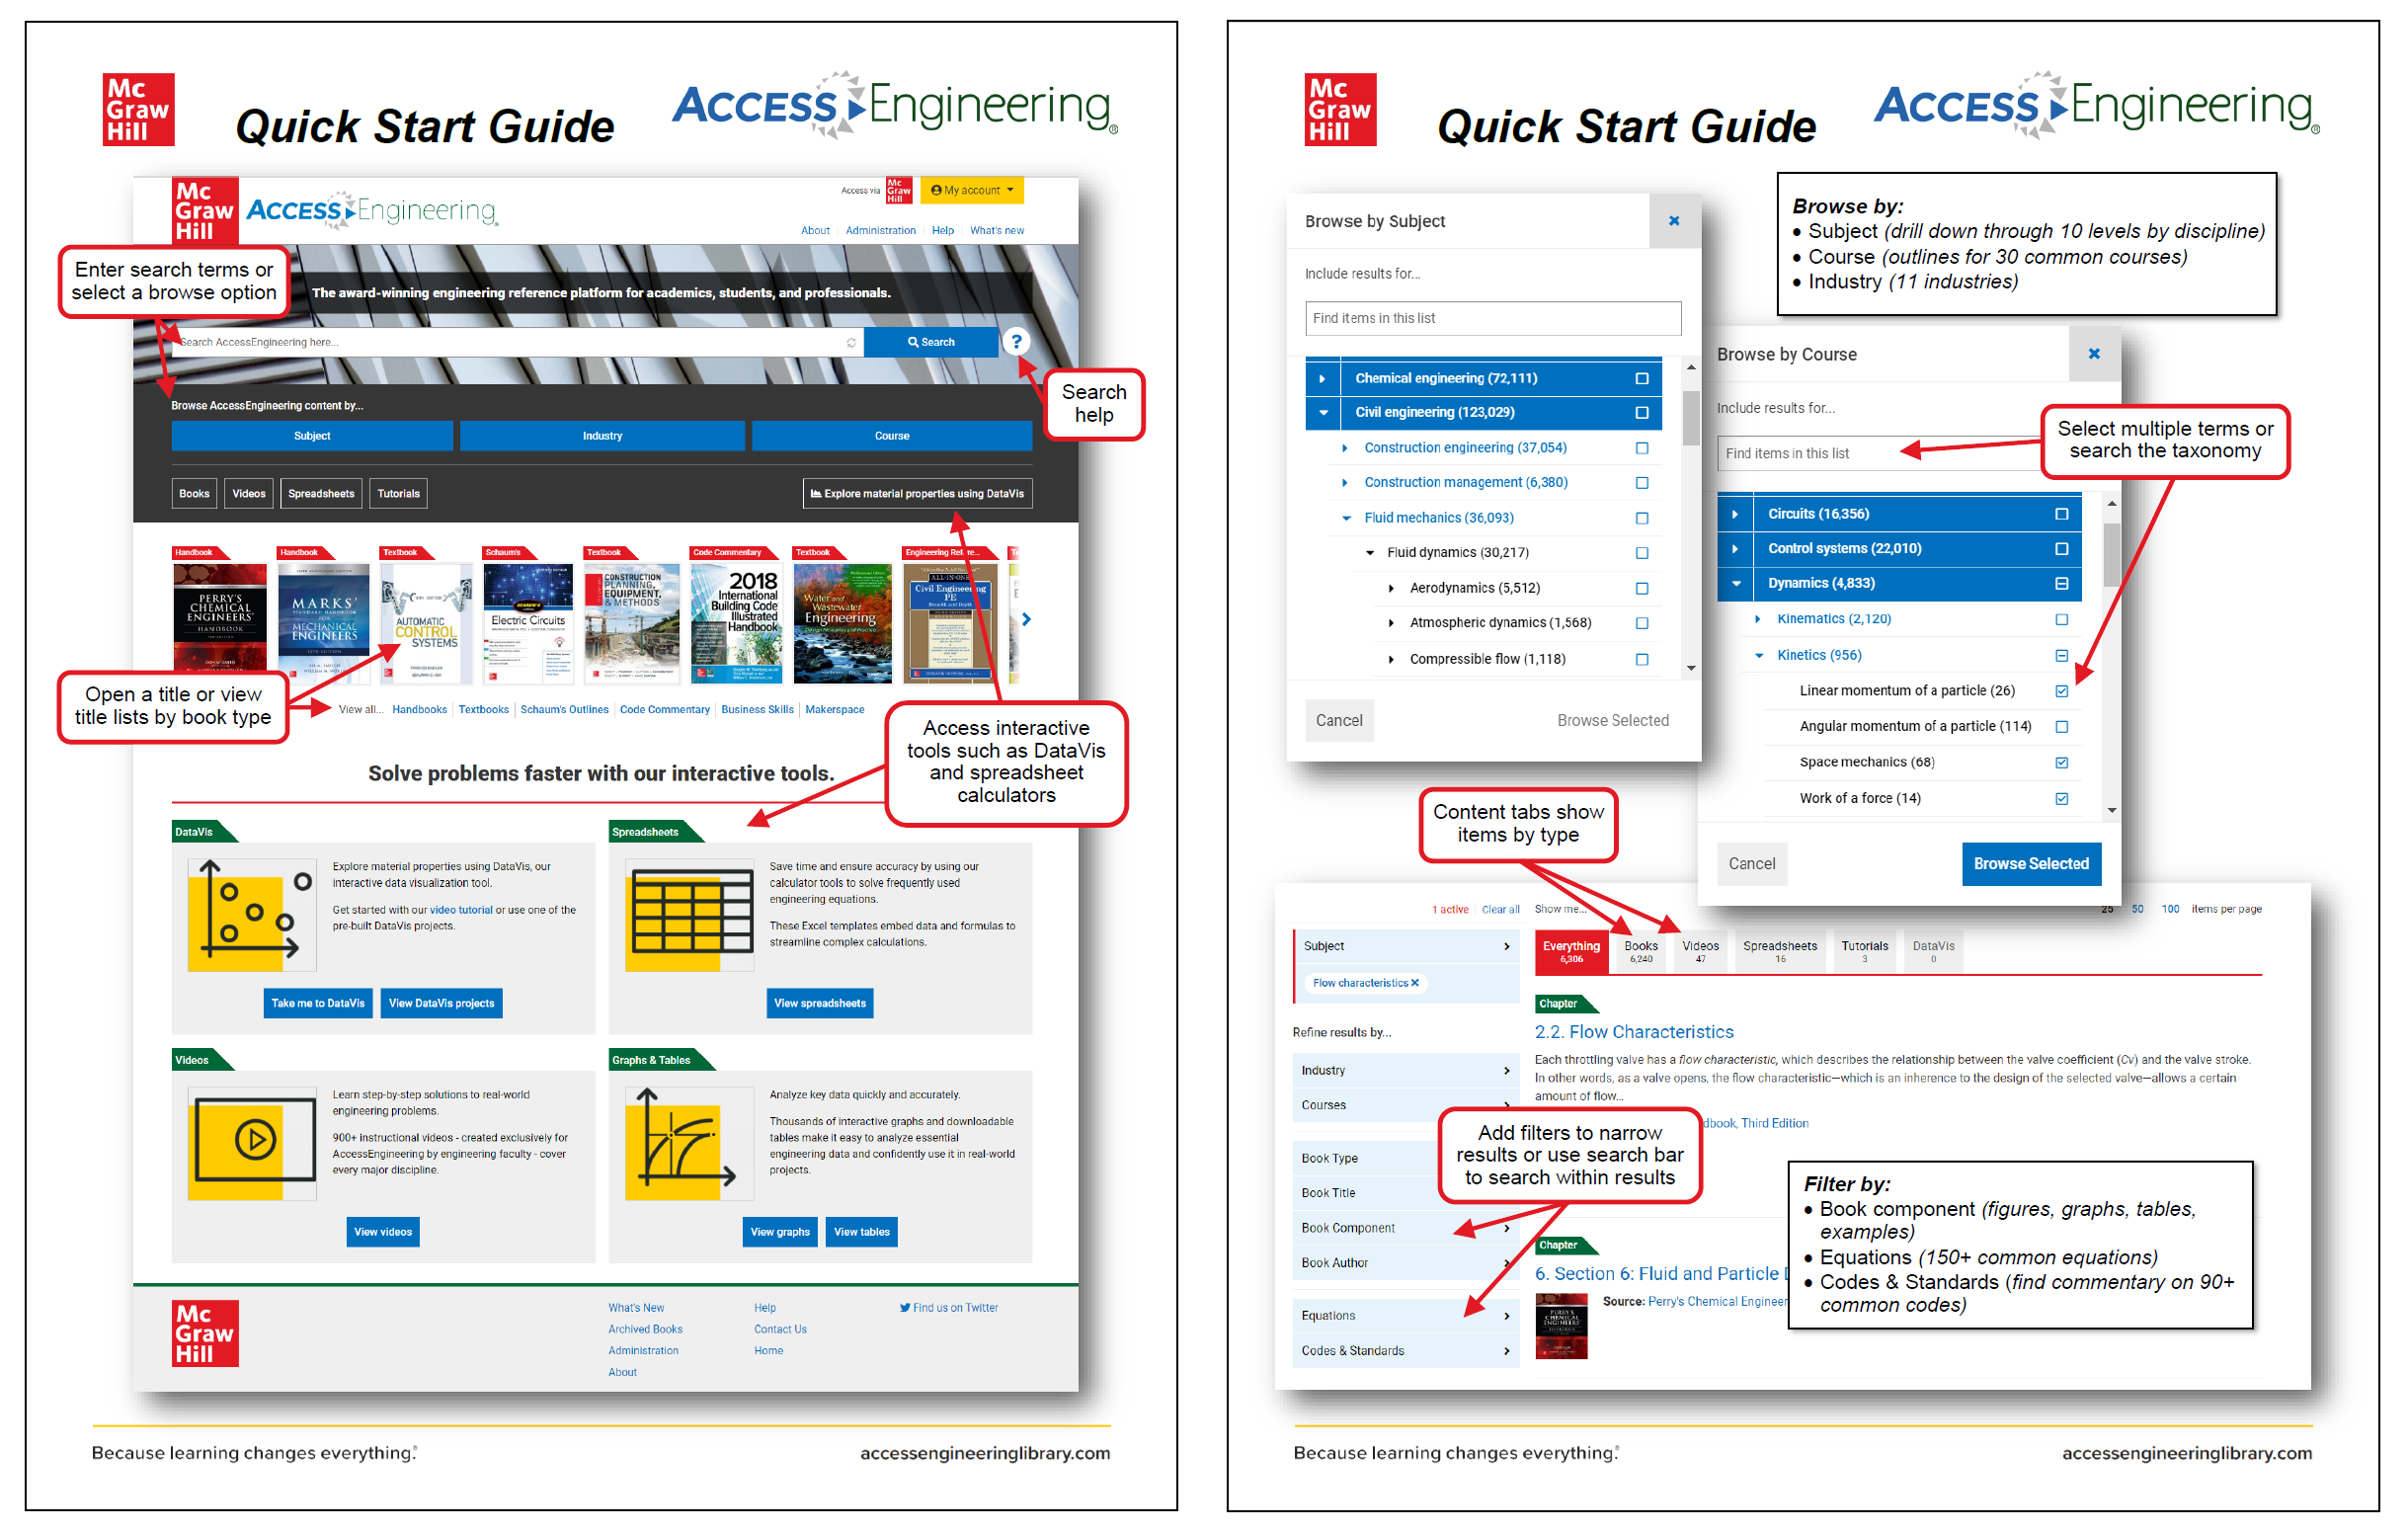 AccessEngineering quick start guide thumbnail